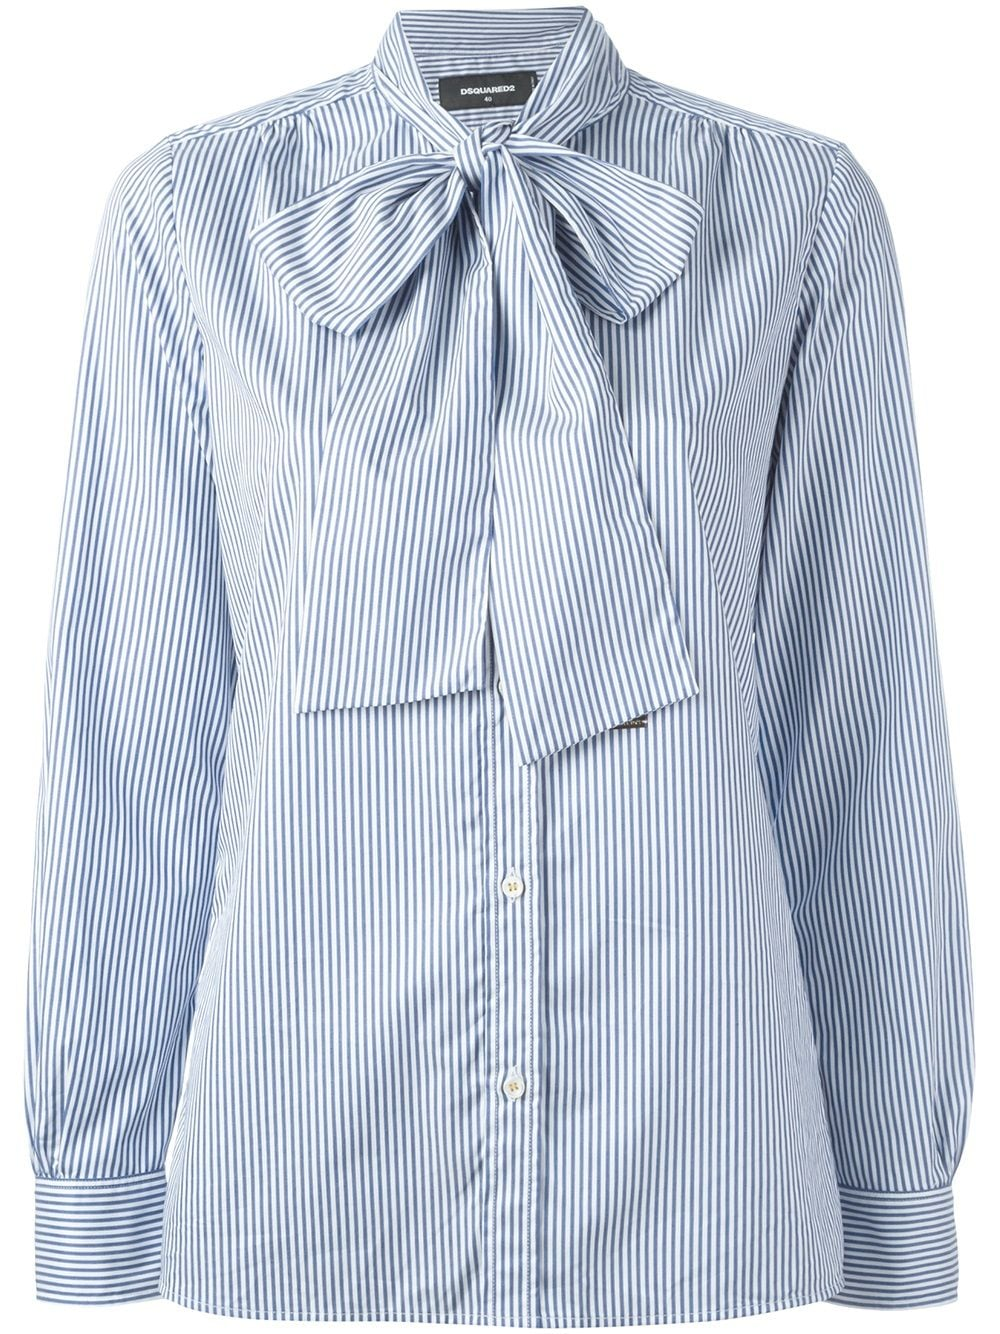 Dsquared2 striped blouse